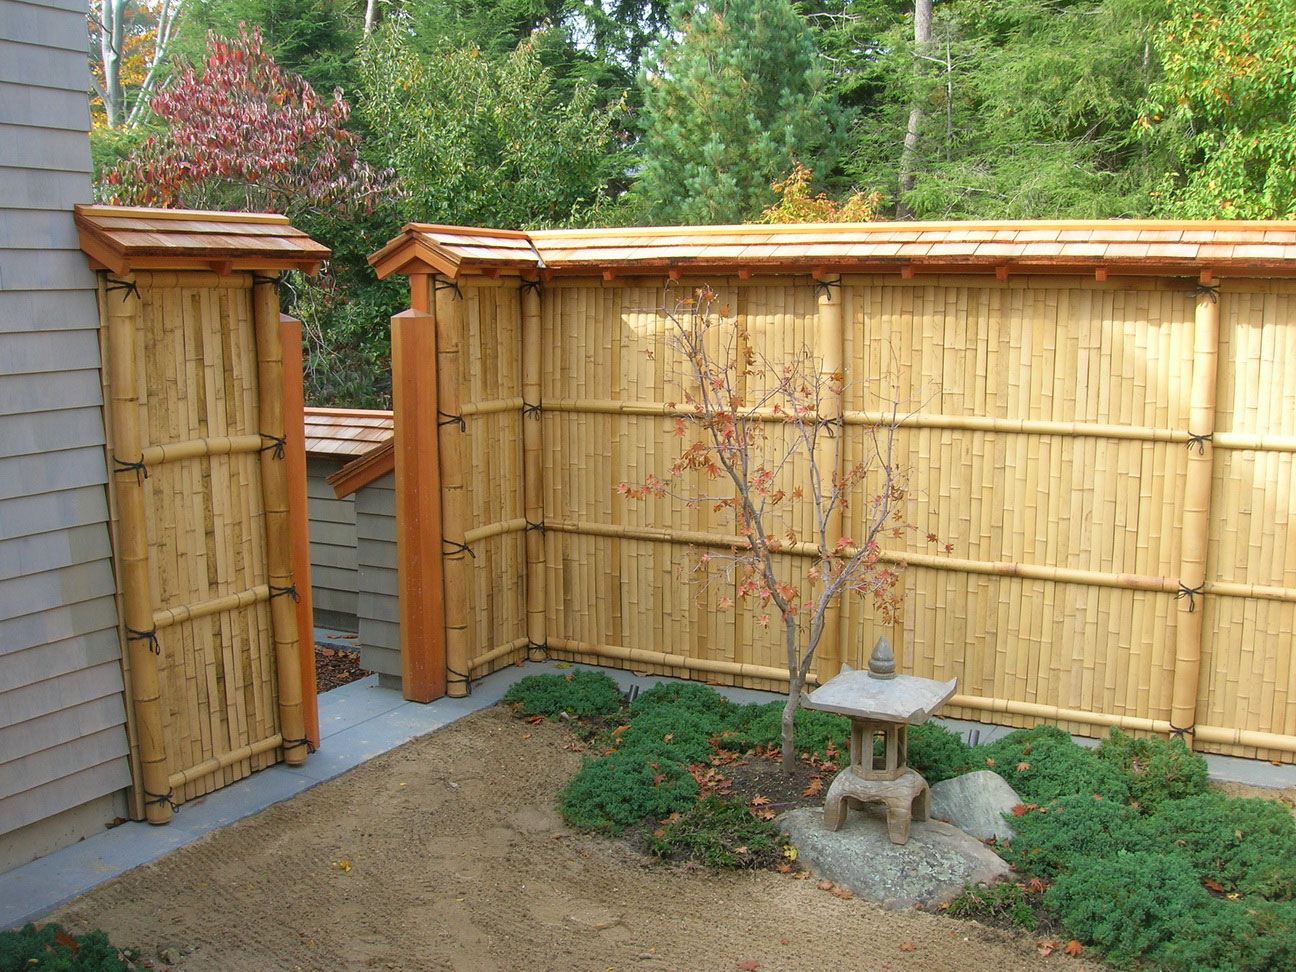 Bamboo Fencing Ideas For Your Backyard Advice For Your Home Decoration within 15 Smart Designs of How to Make Bamboo Ideas For Backyard